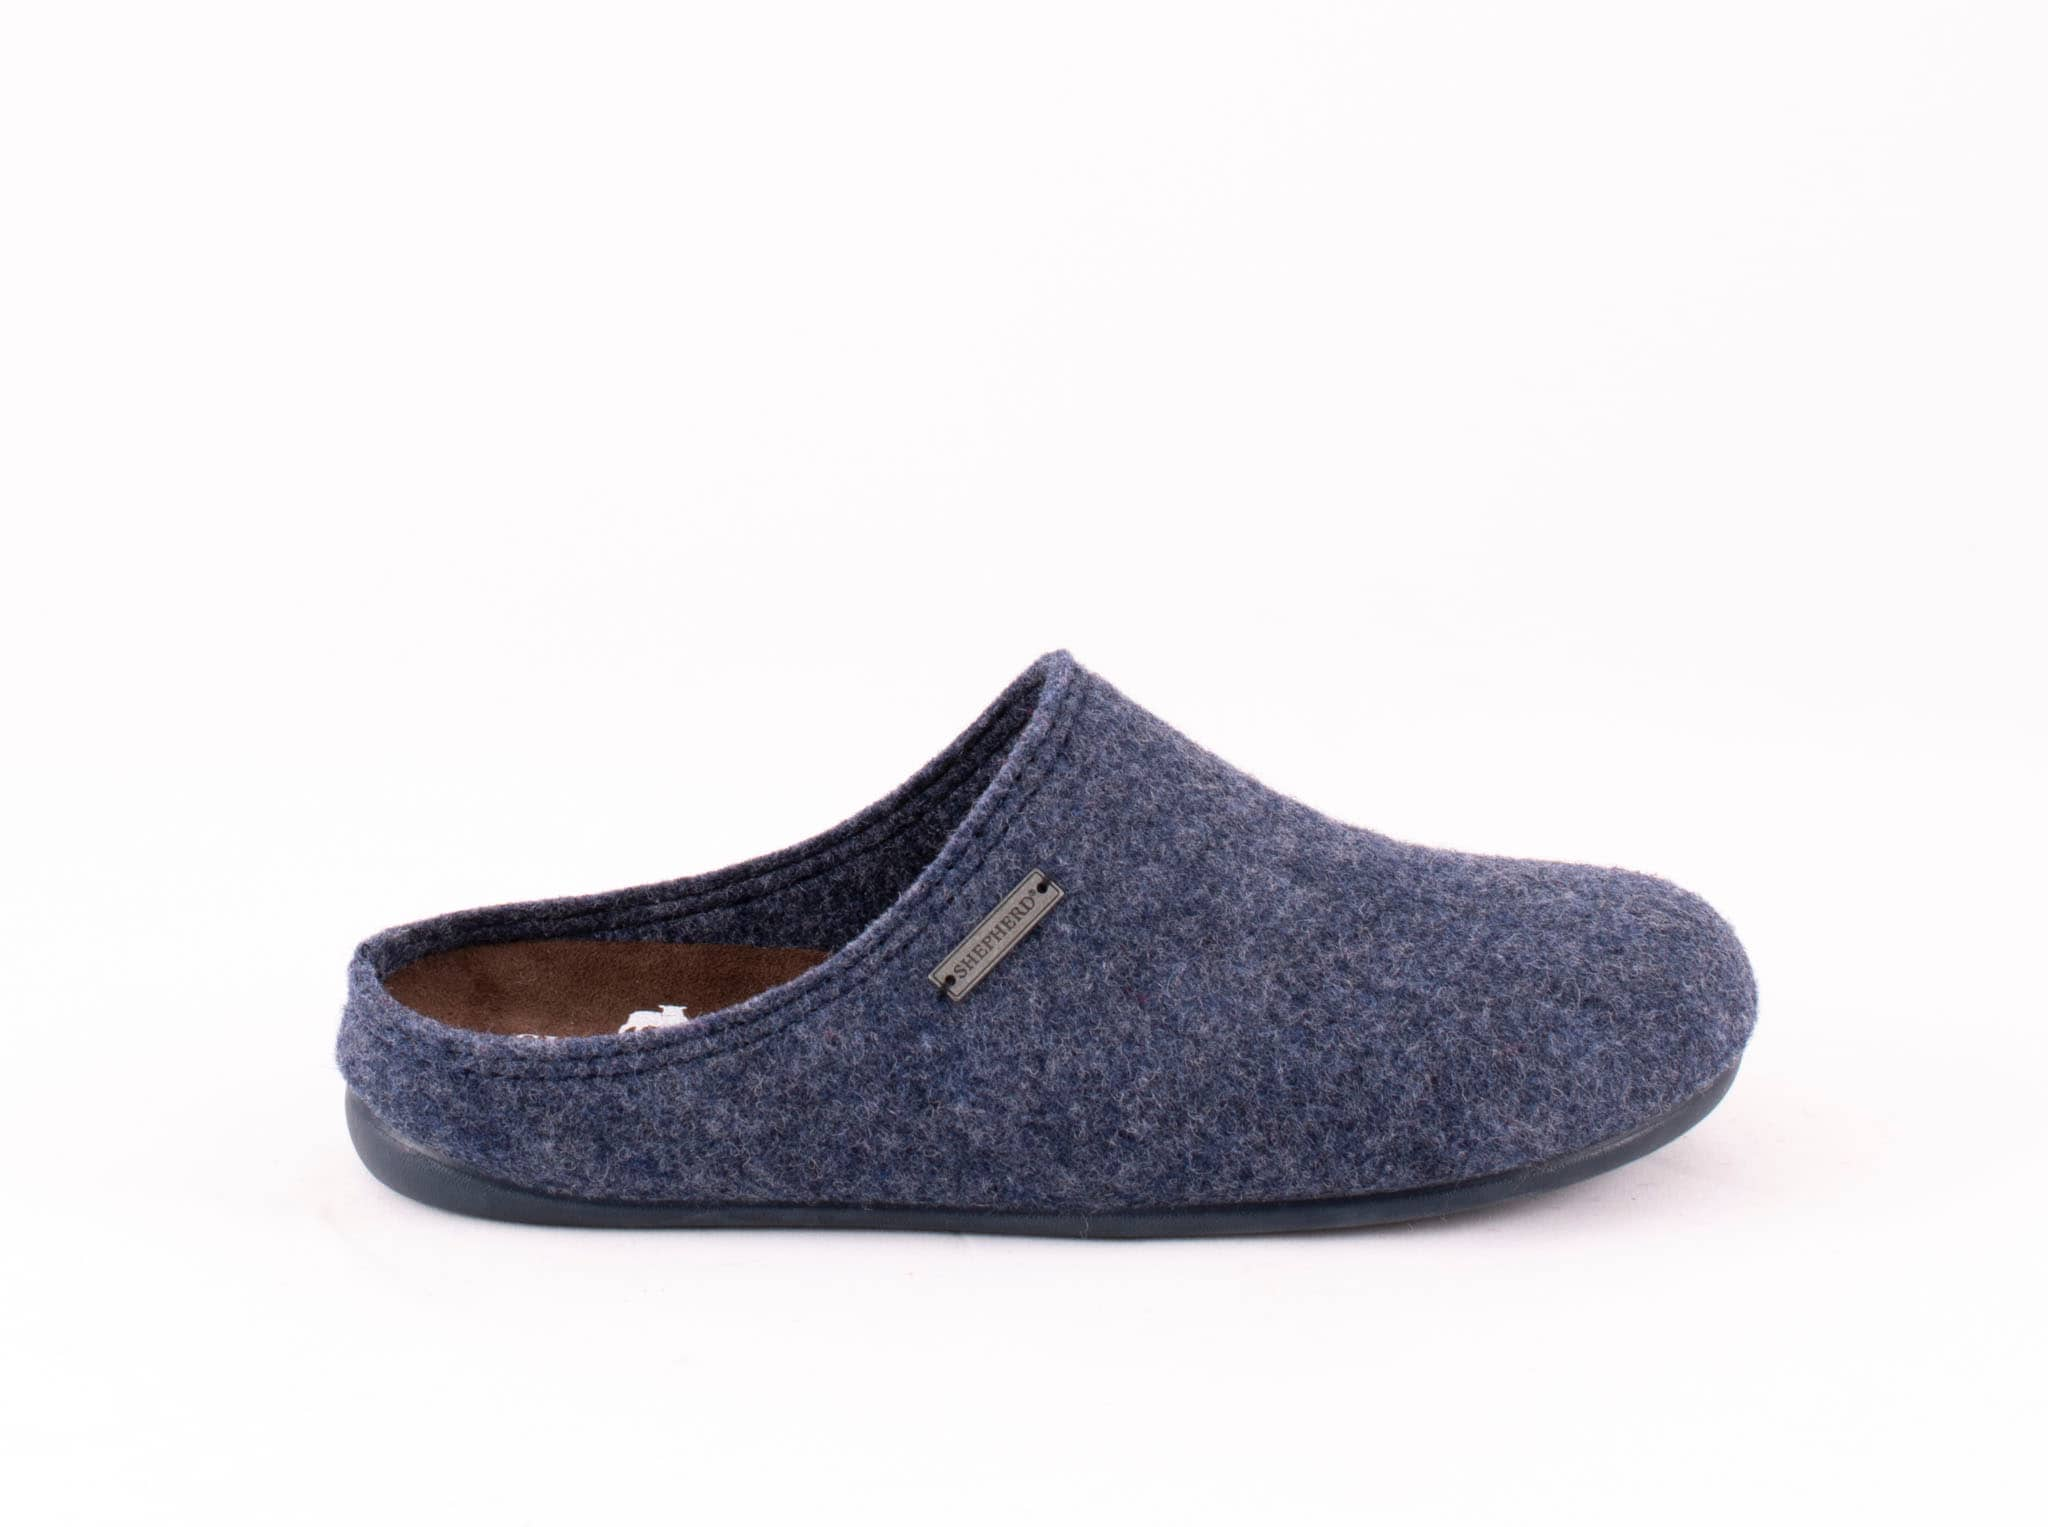 Jon wool slippers